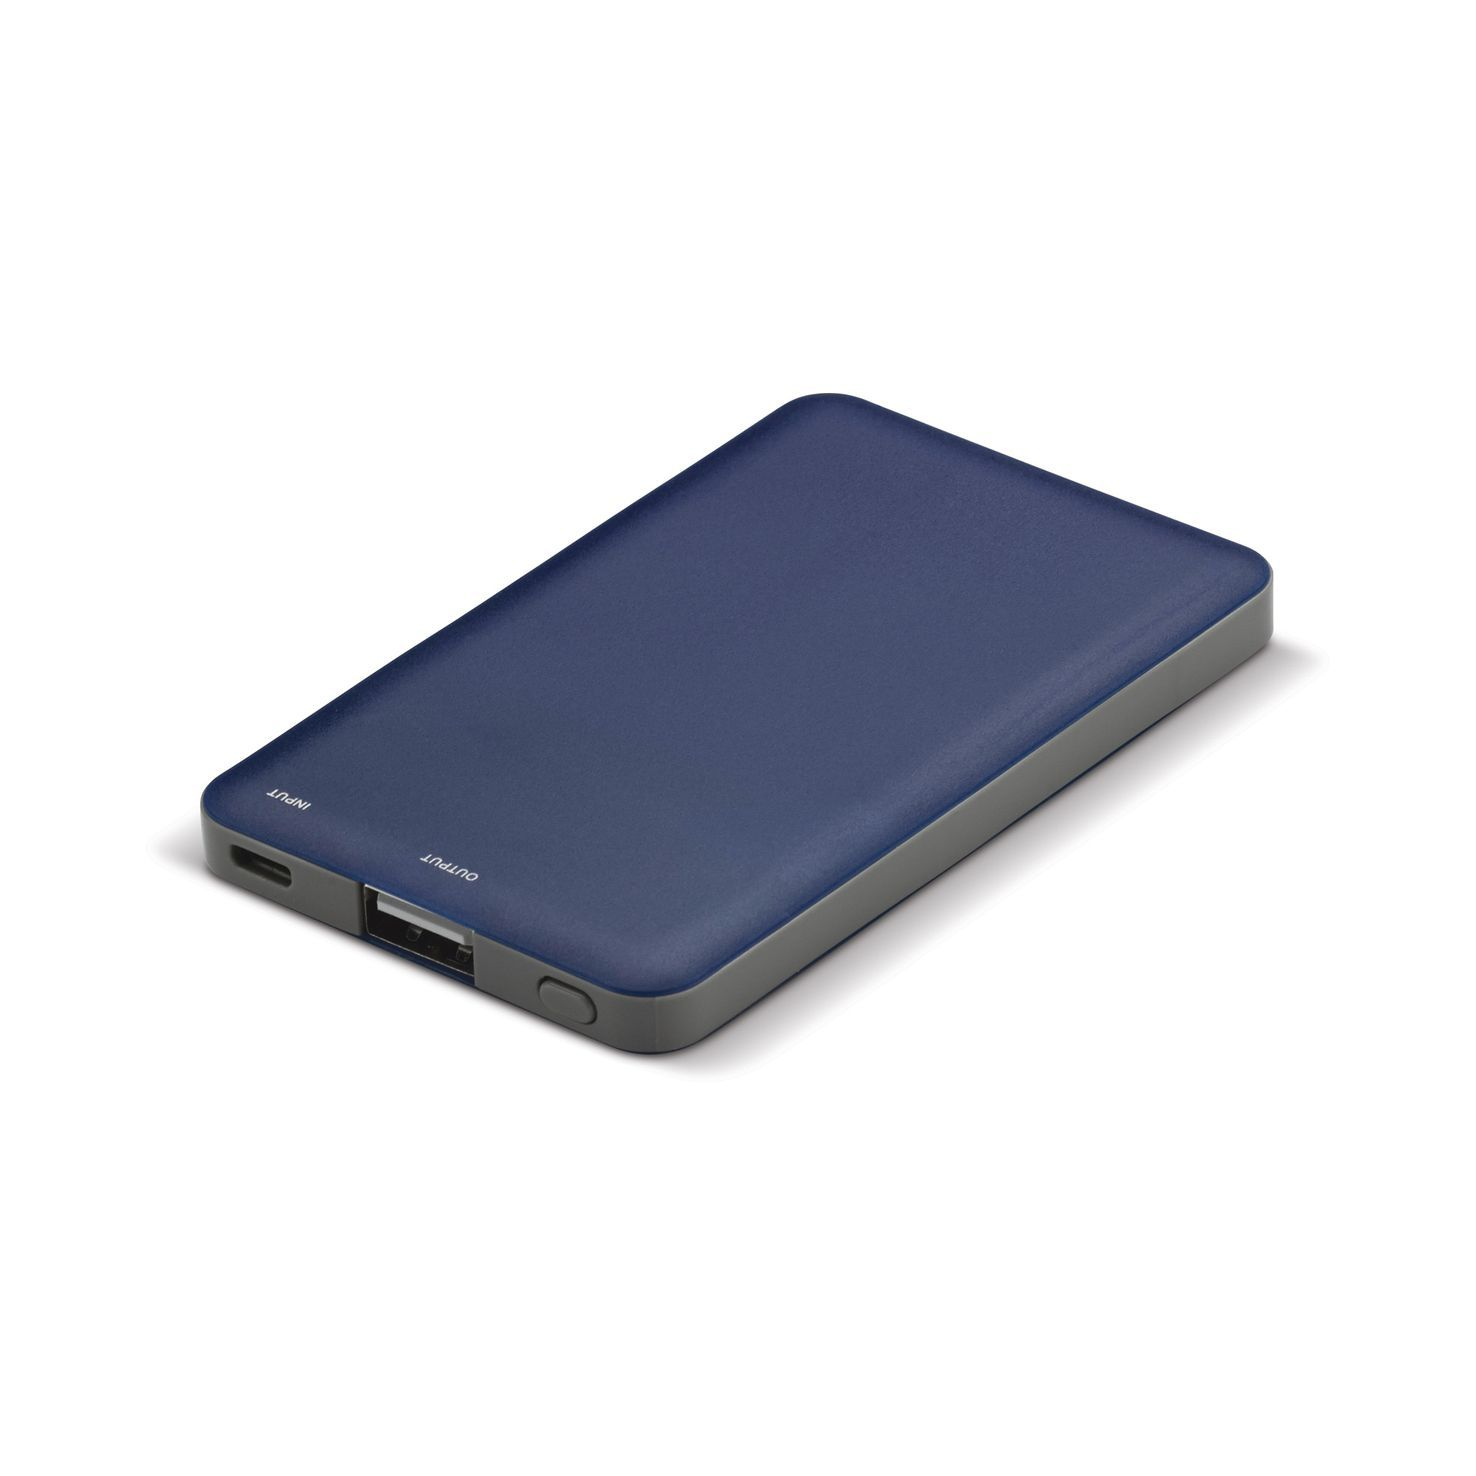 Blauwe Powerbank | Led indicatie | 2000 mAh